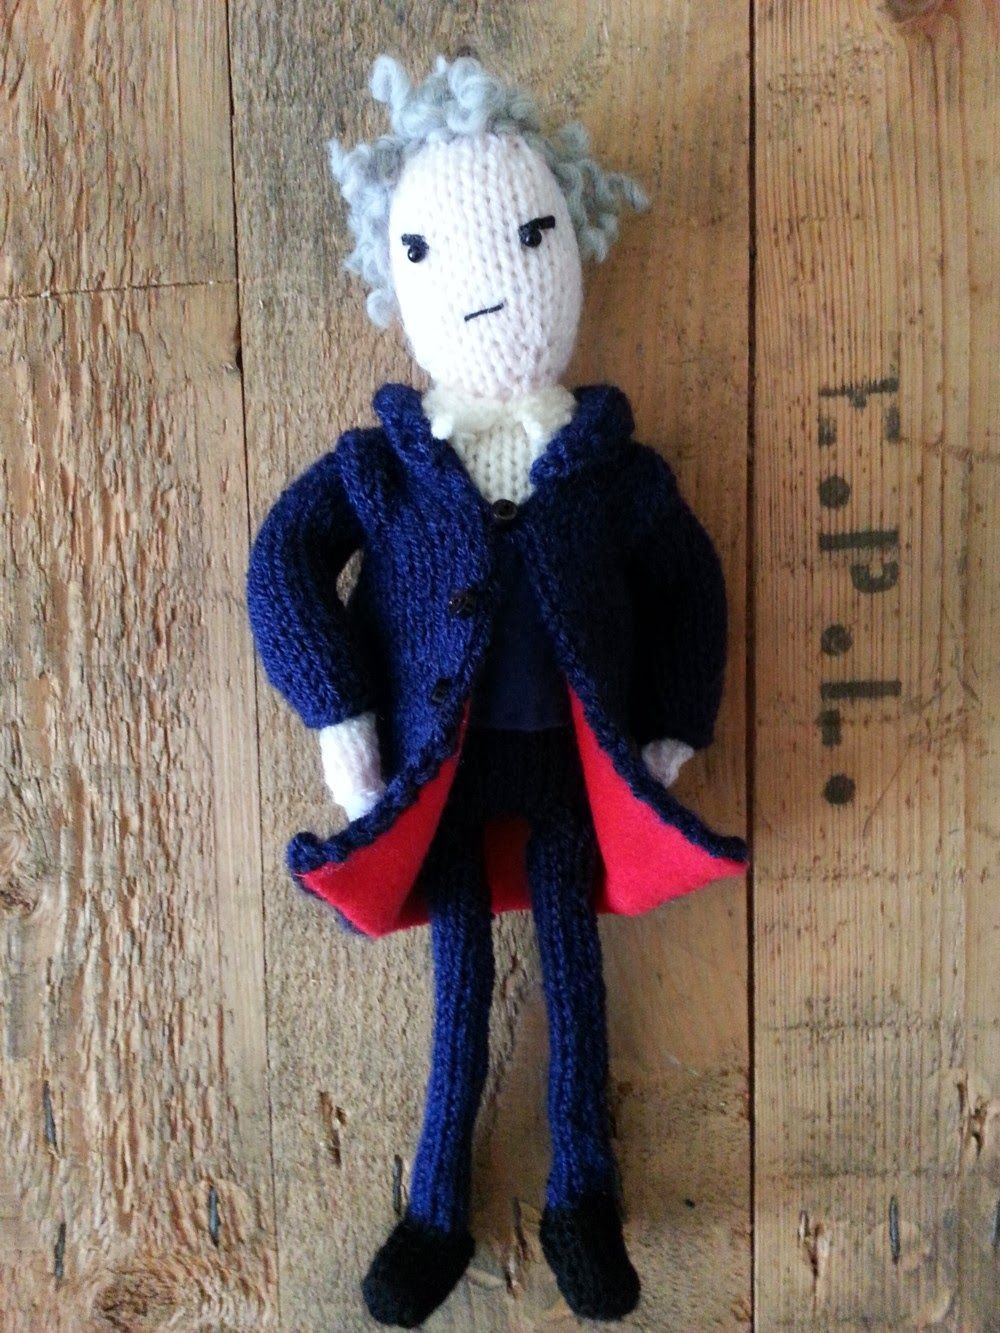 Knit for victory peter capaldi as doctor who knitted doll knit for victory peter capaldi as doctor who knitted doll pattern bankloansurffo Image collections